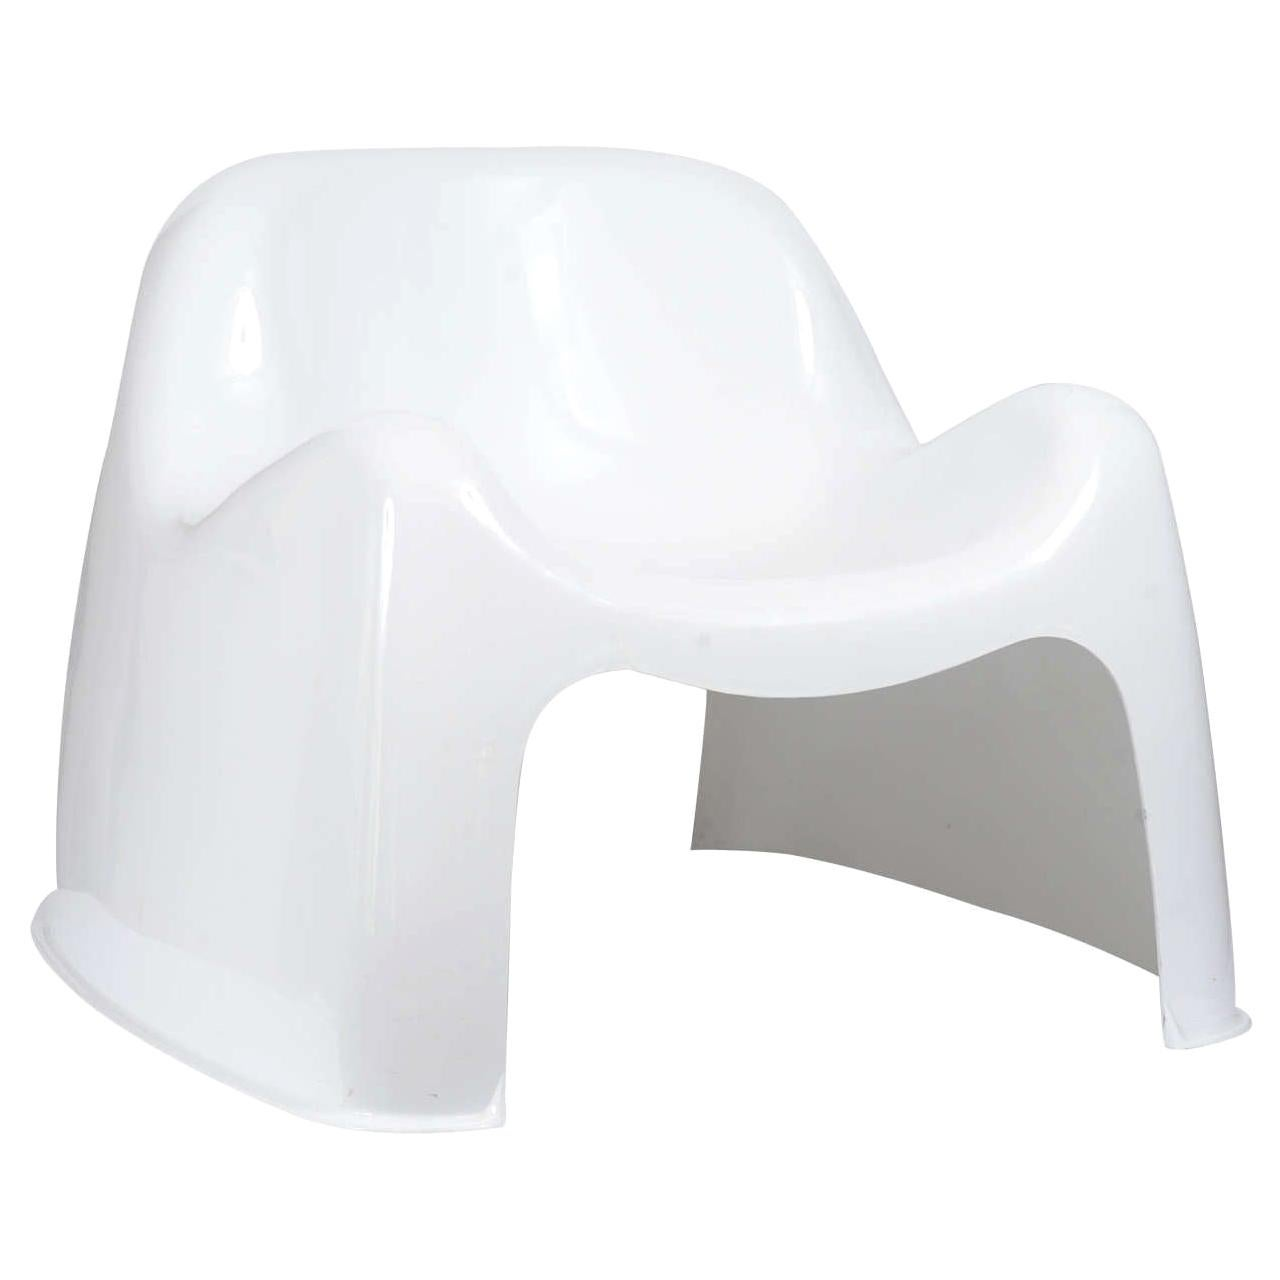 Mid-Century Modern White Toga Chair by Sergio Mazza for Artemide